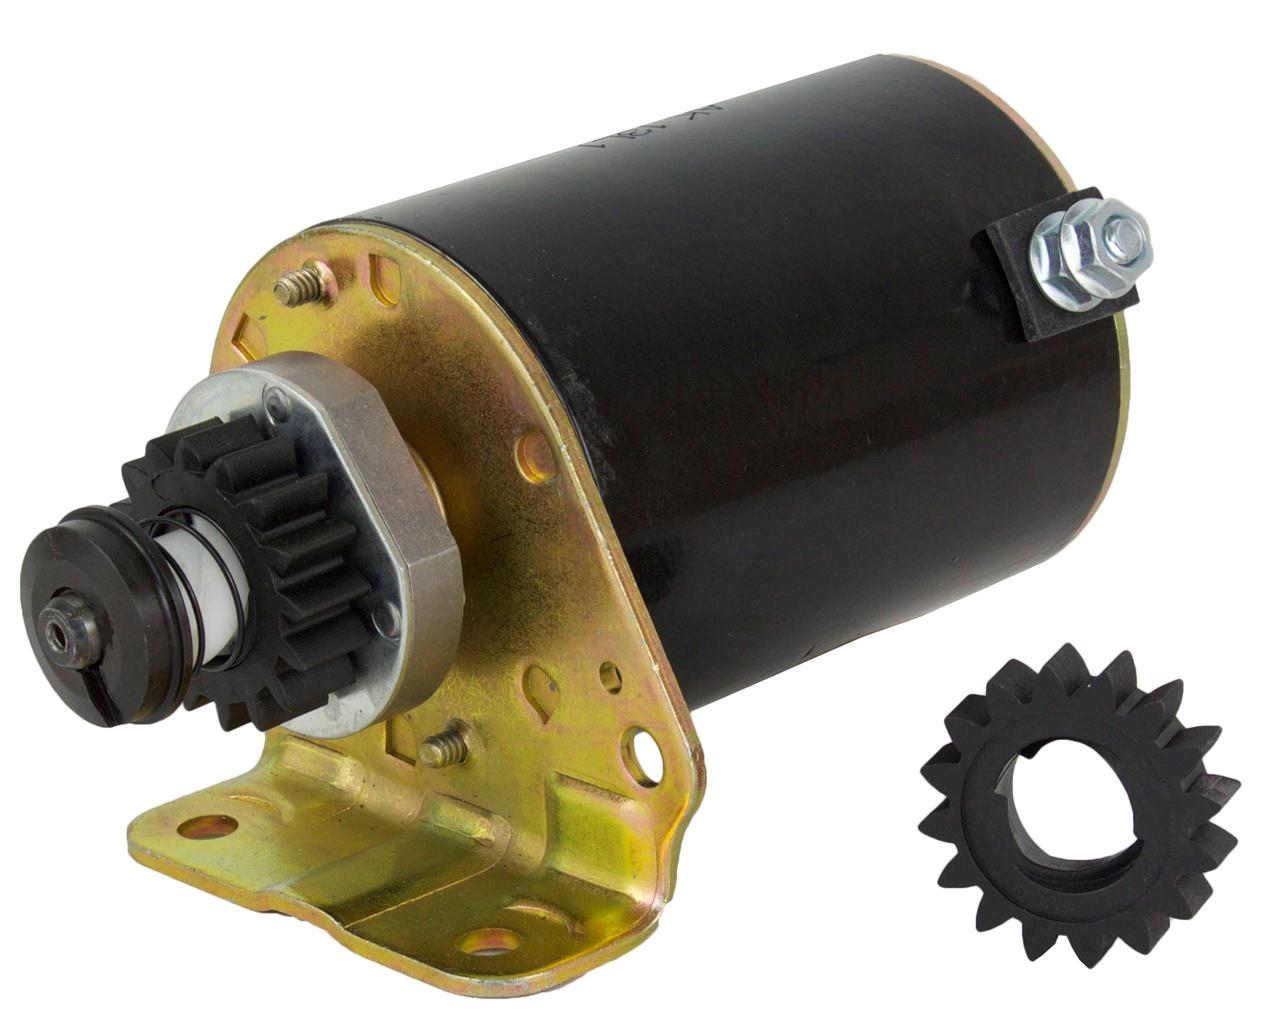 New Starter Fits Briggs Stratton Cooled Engines 12hp 16hp With Free Gear 391423